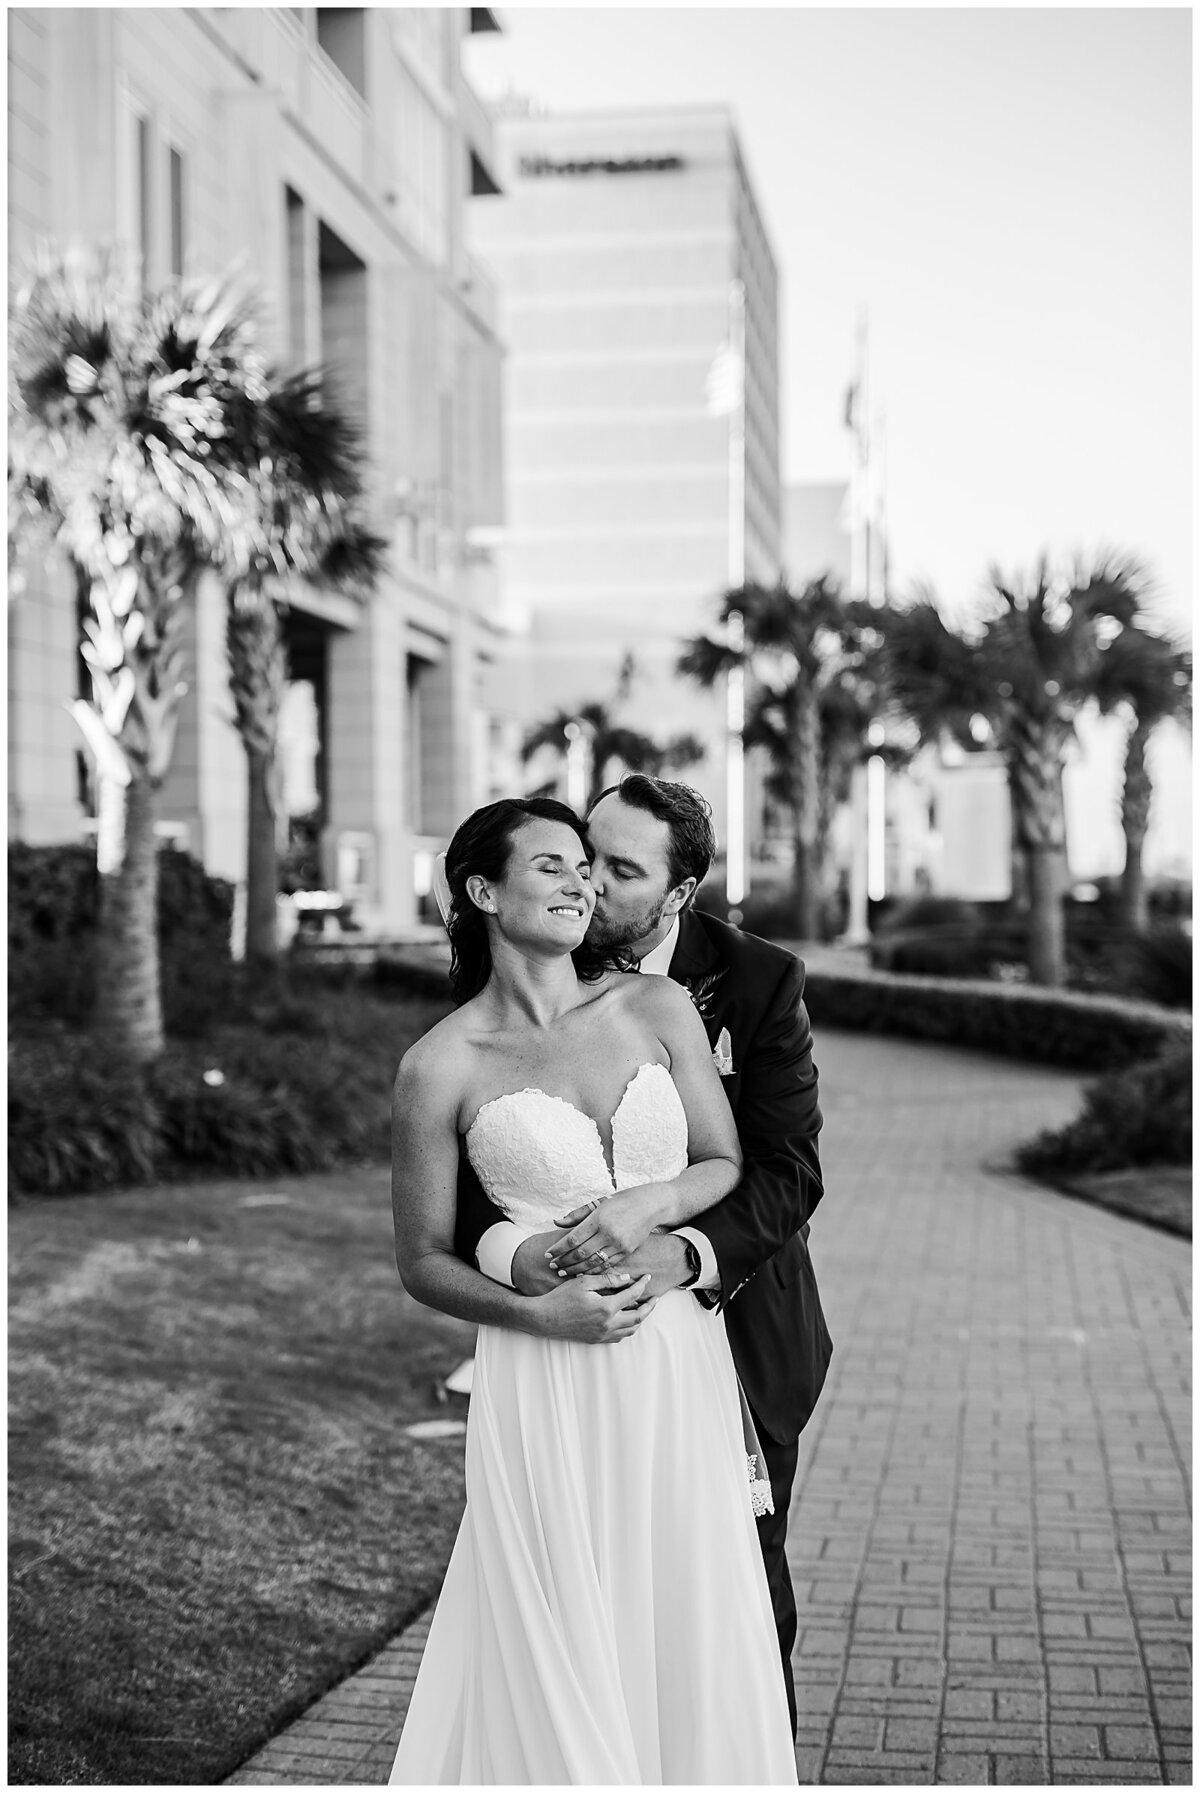 meghan lupyan hampton roads wedding photographer250